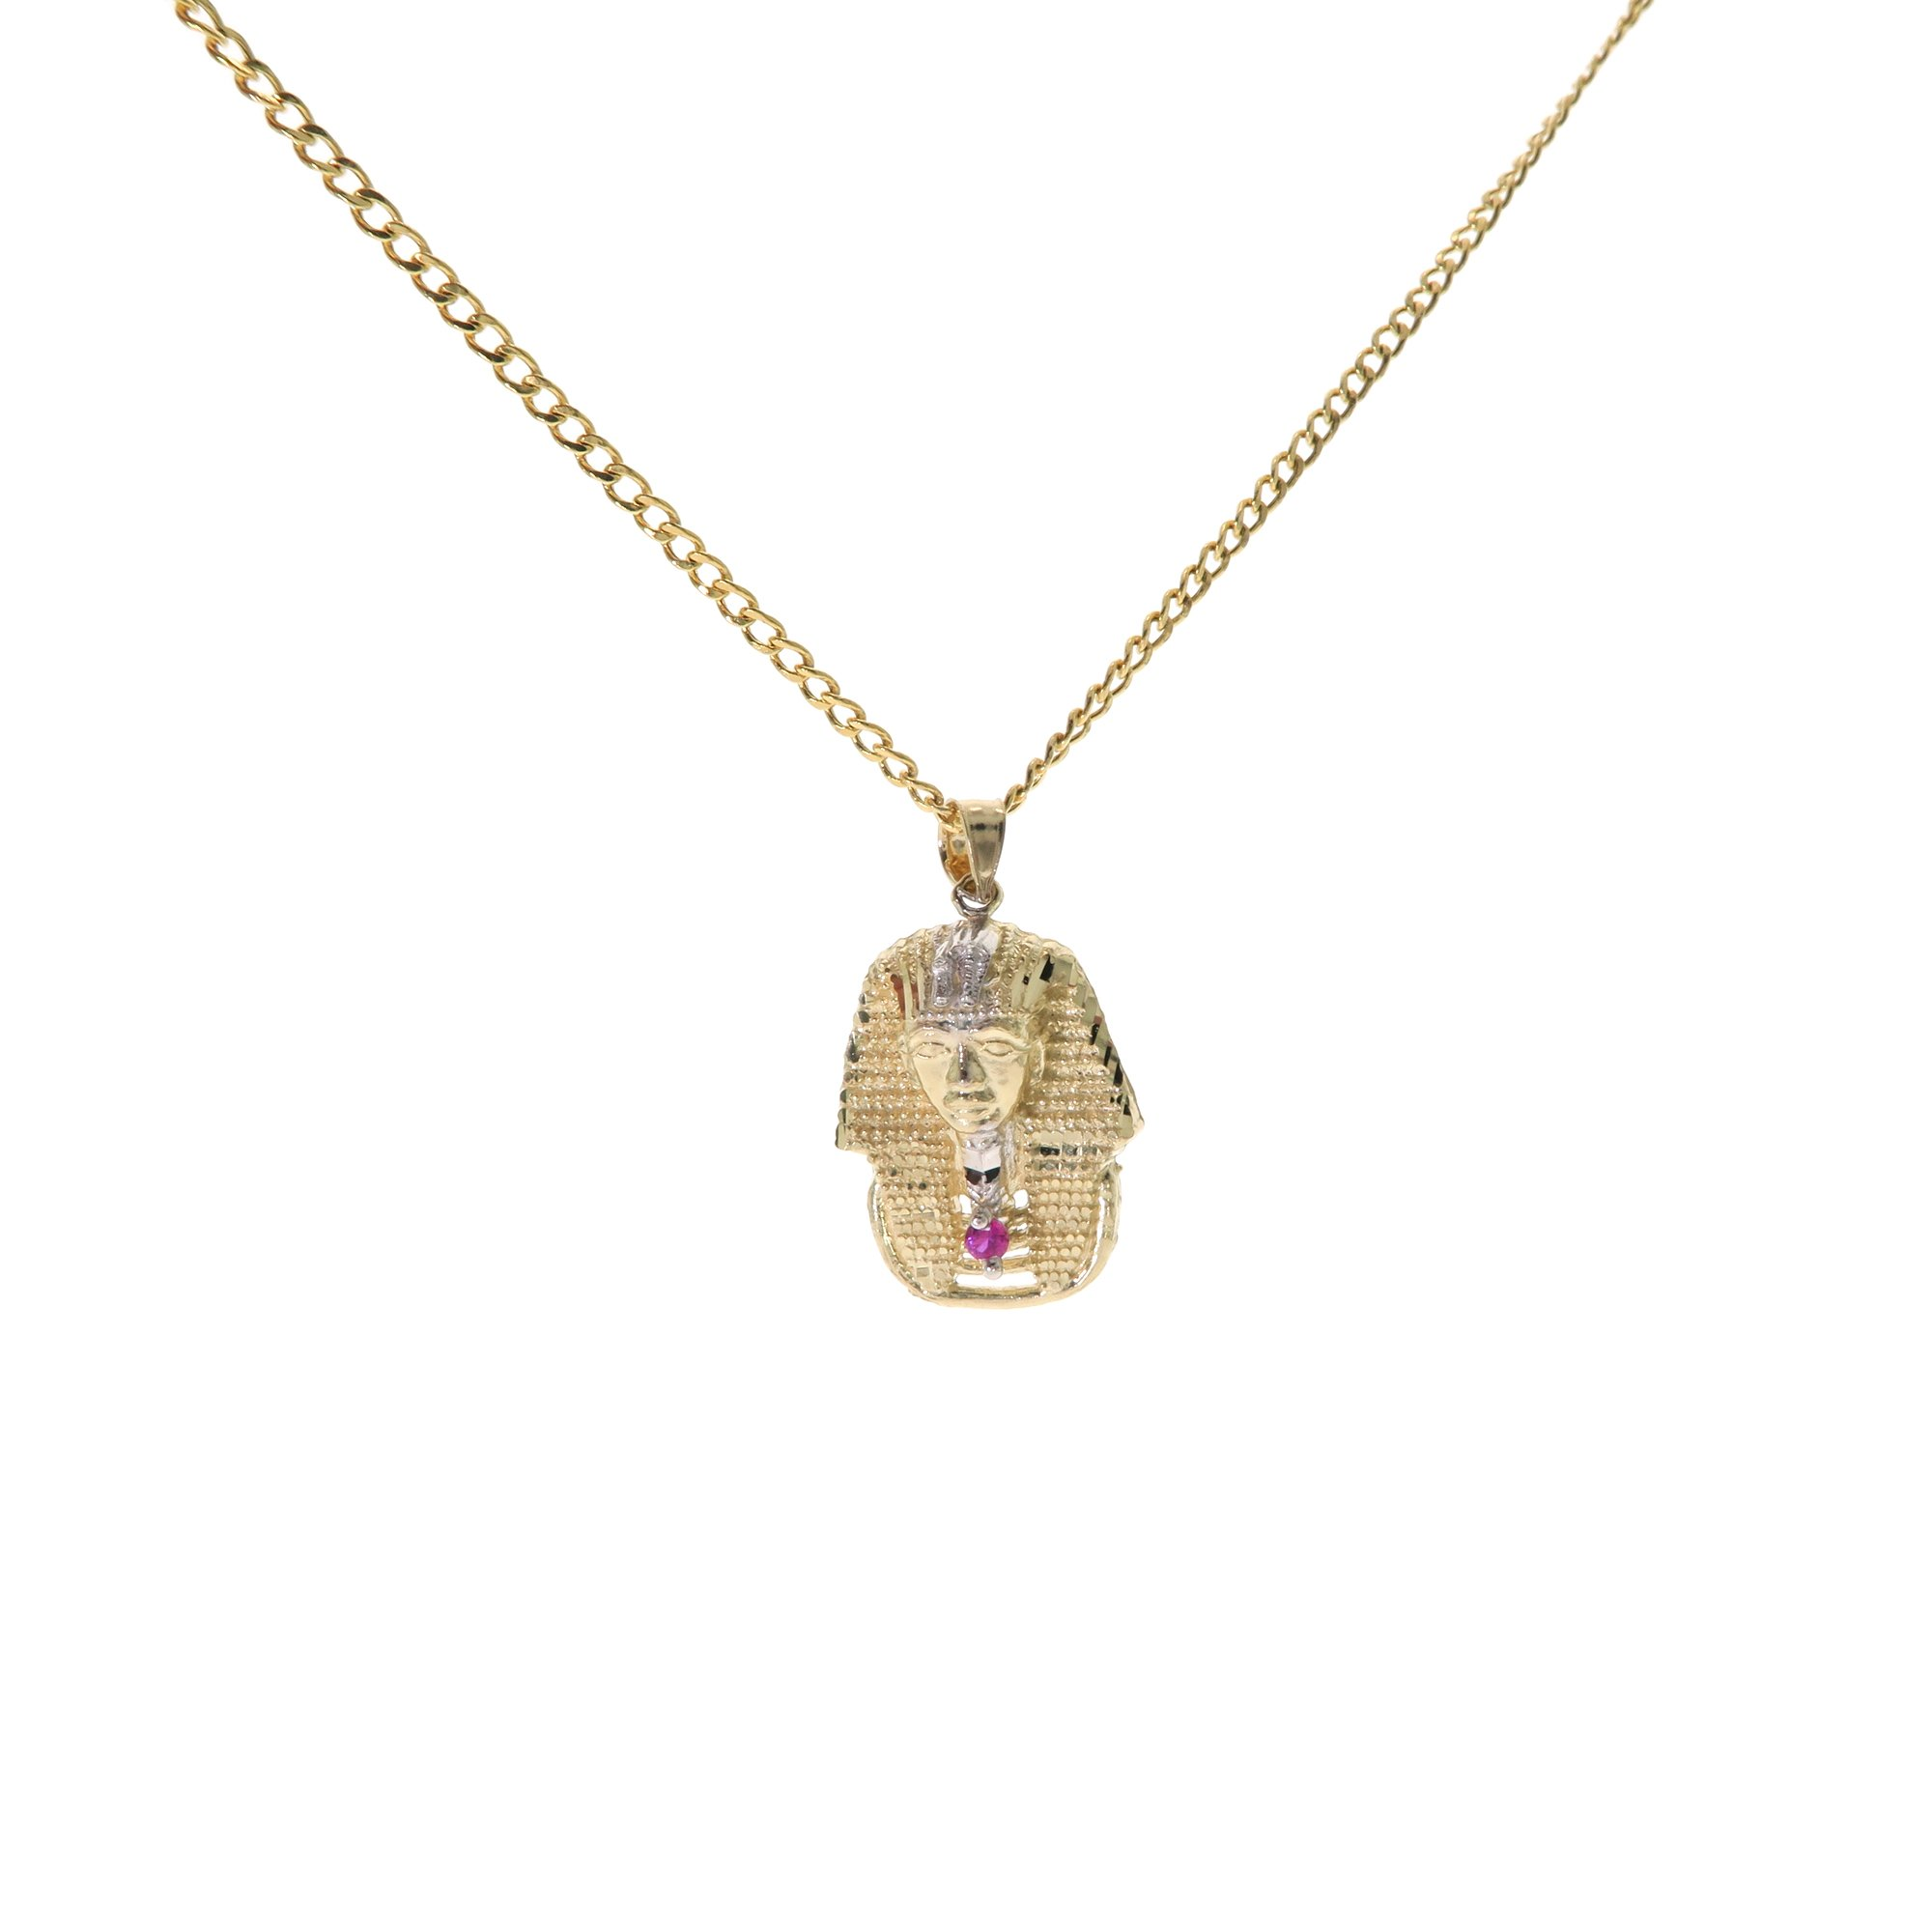 Genuine Stamped 10K Yellow Gold Cuban Curb Link Chain Small Charm Pendant Necklace [ASSORTED SETS] (Pharaoh King Tut + 20 Inches Necklace)